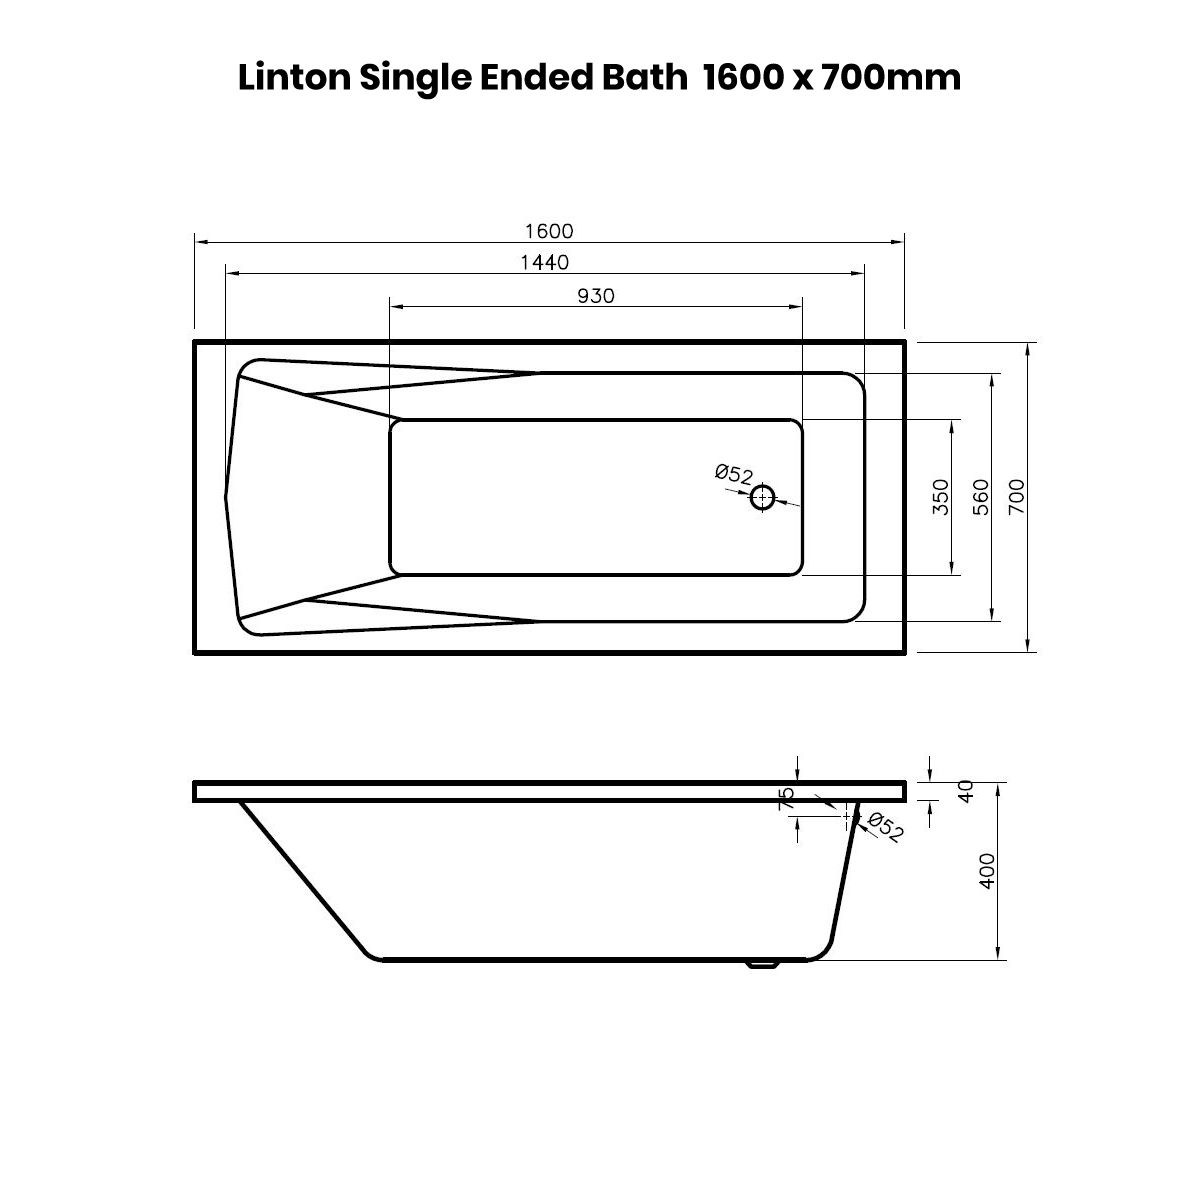 Nuie Linton Single Ended Bath 1600 x 700mm Dimensions